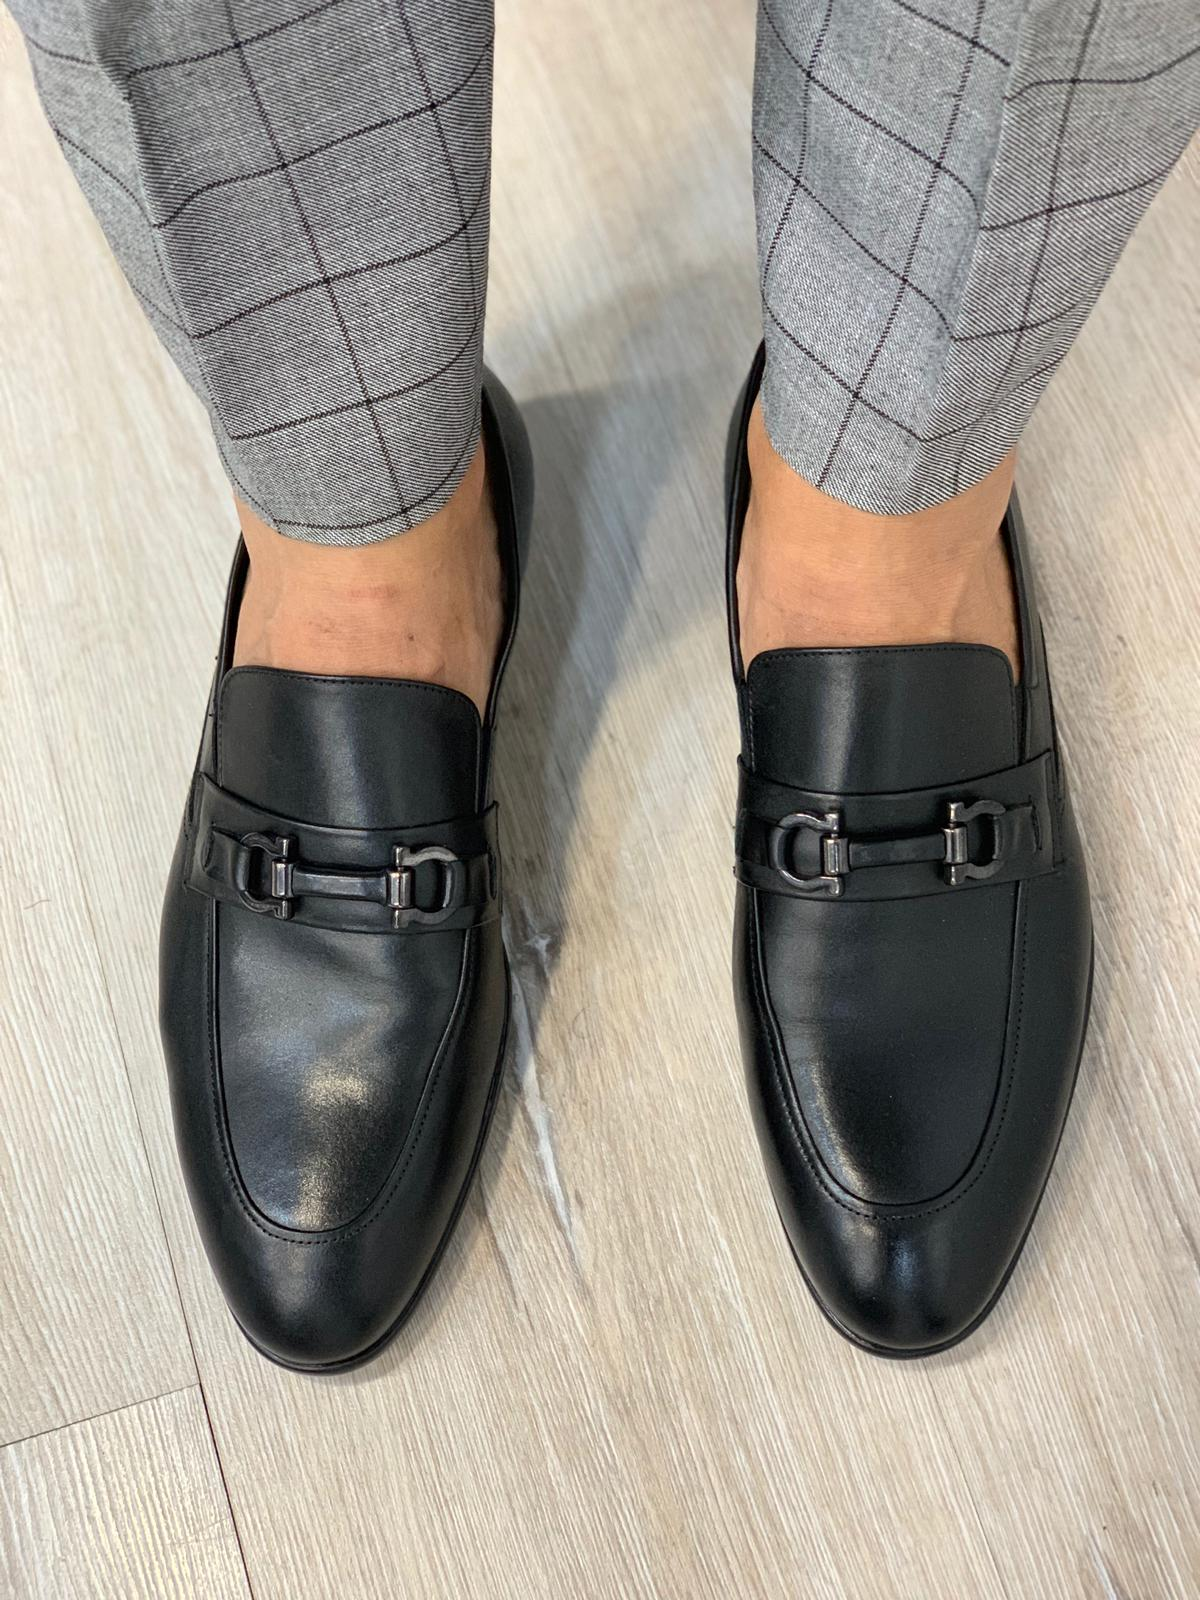 Marc Limited Shoes in Black